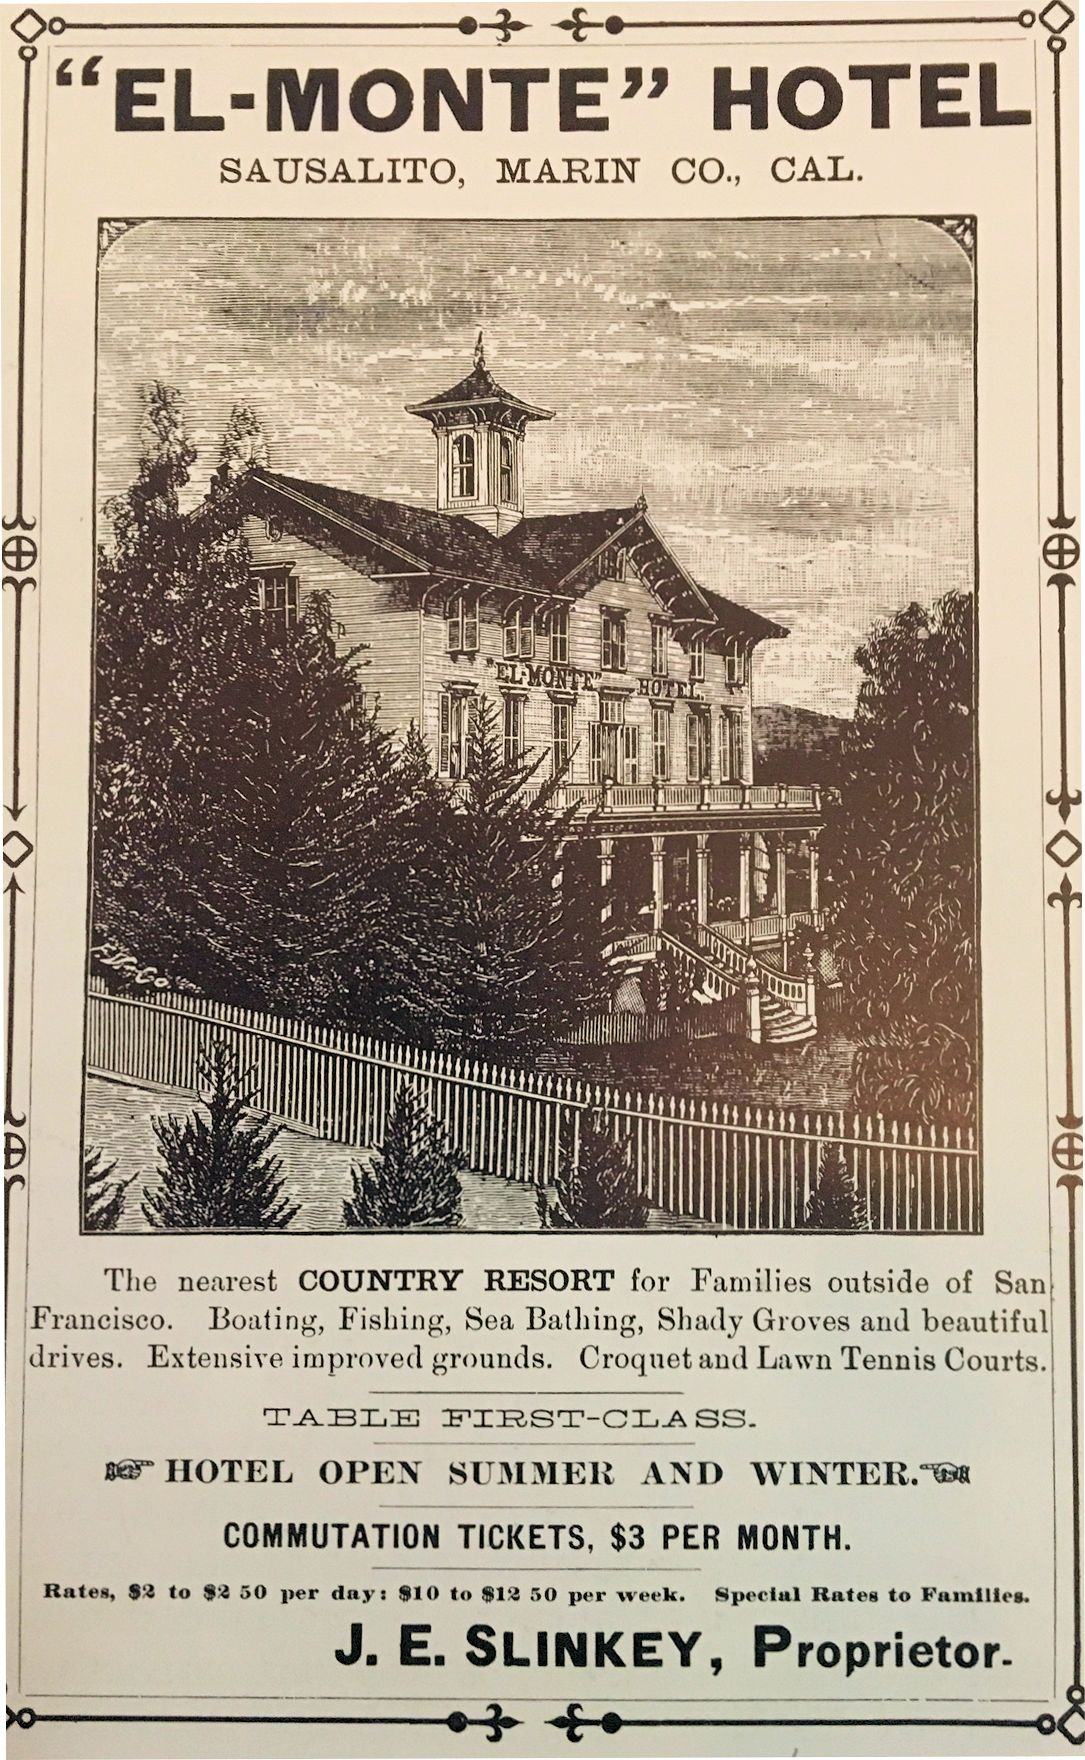 """Ad for El Monte Hotel, """"the nearest COUNTRY RESORT for families outside of San Francisco."""" Courtesy of Sausalito Historical Society"""